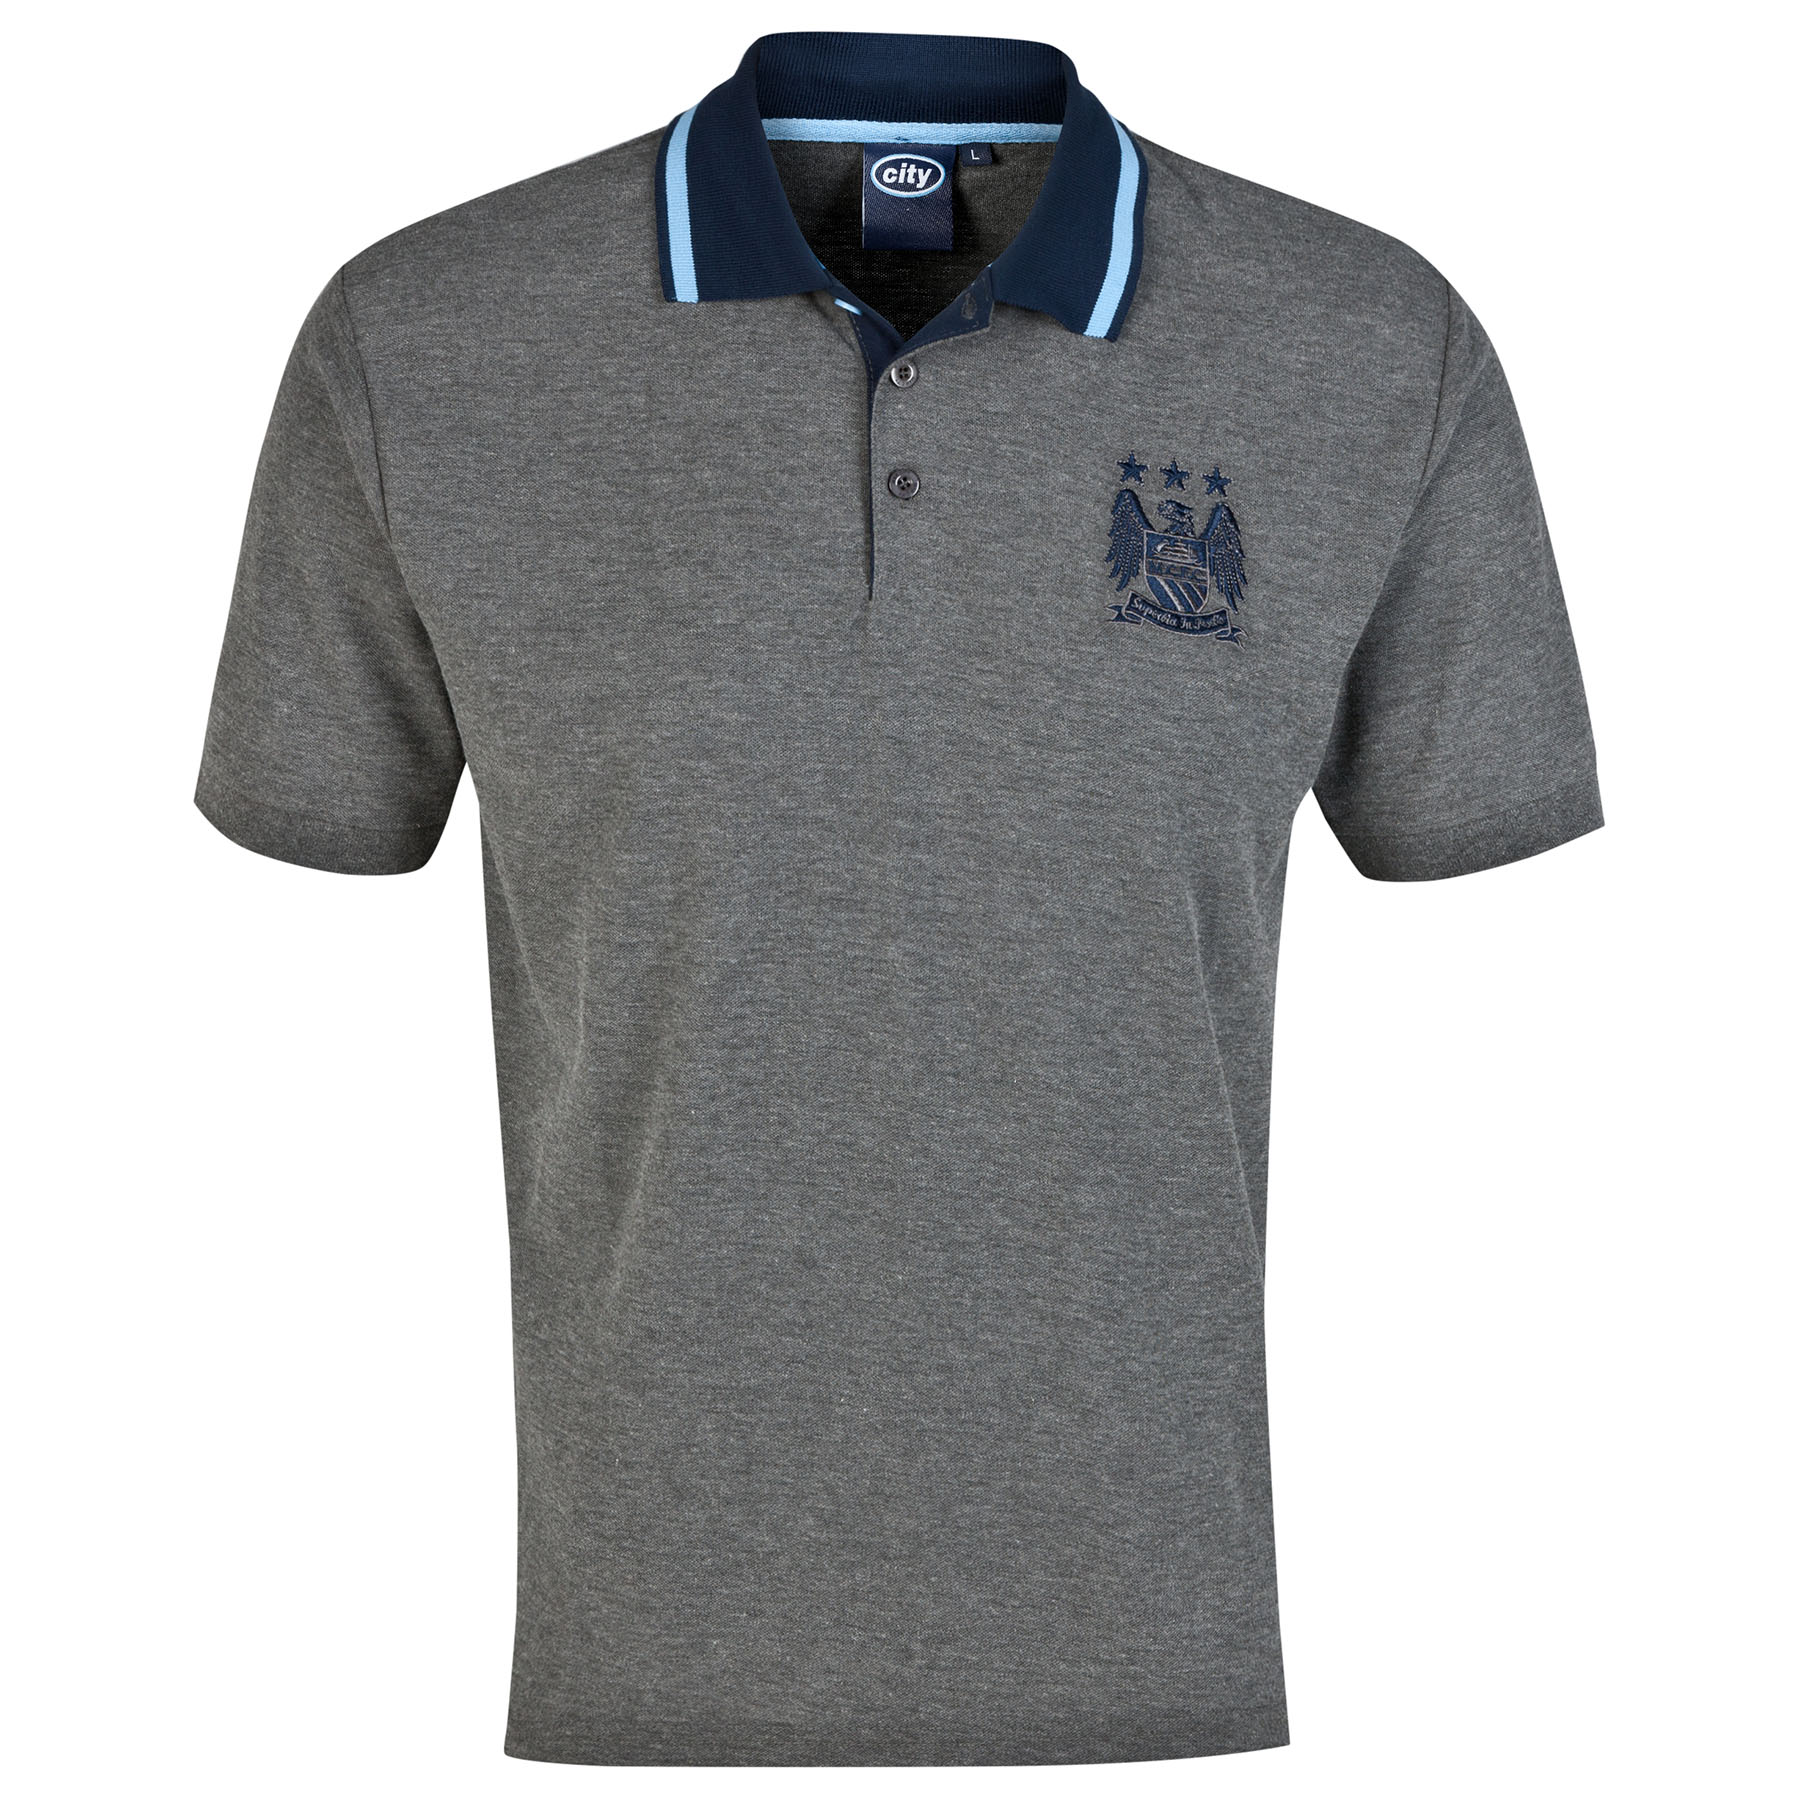 Manchester City Essential Polo Shirt - Vintage Marl - Mens